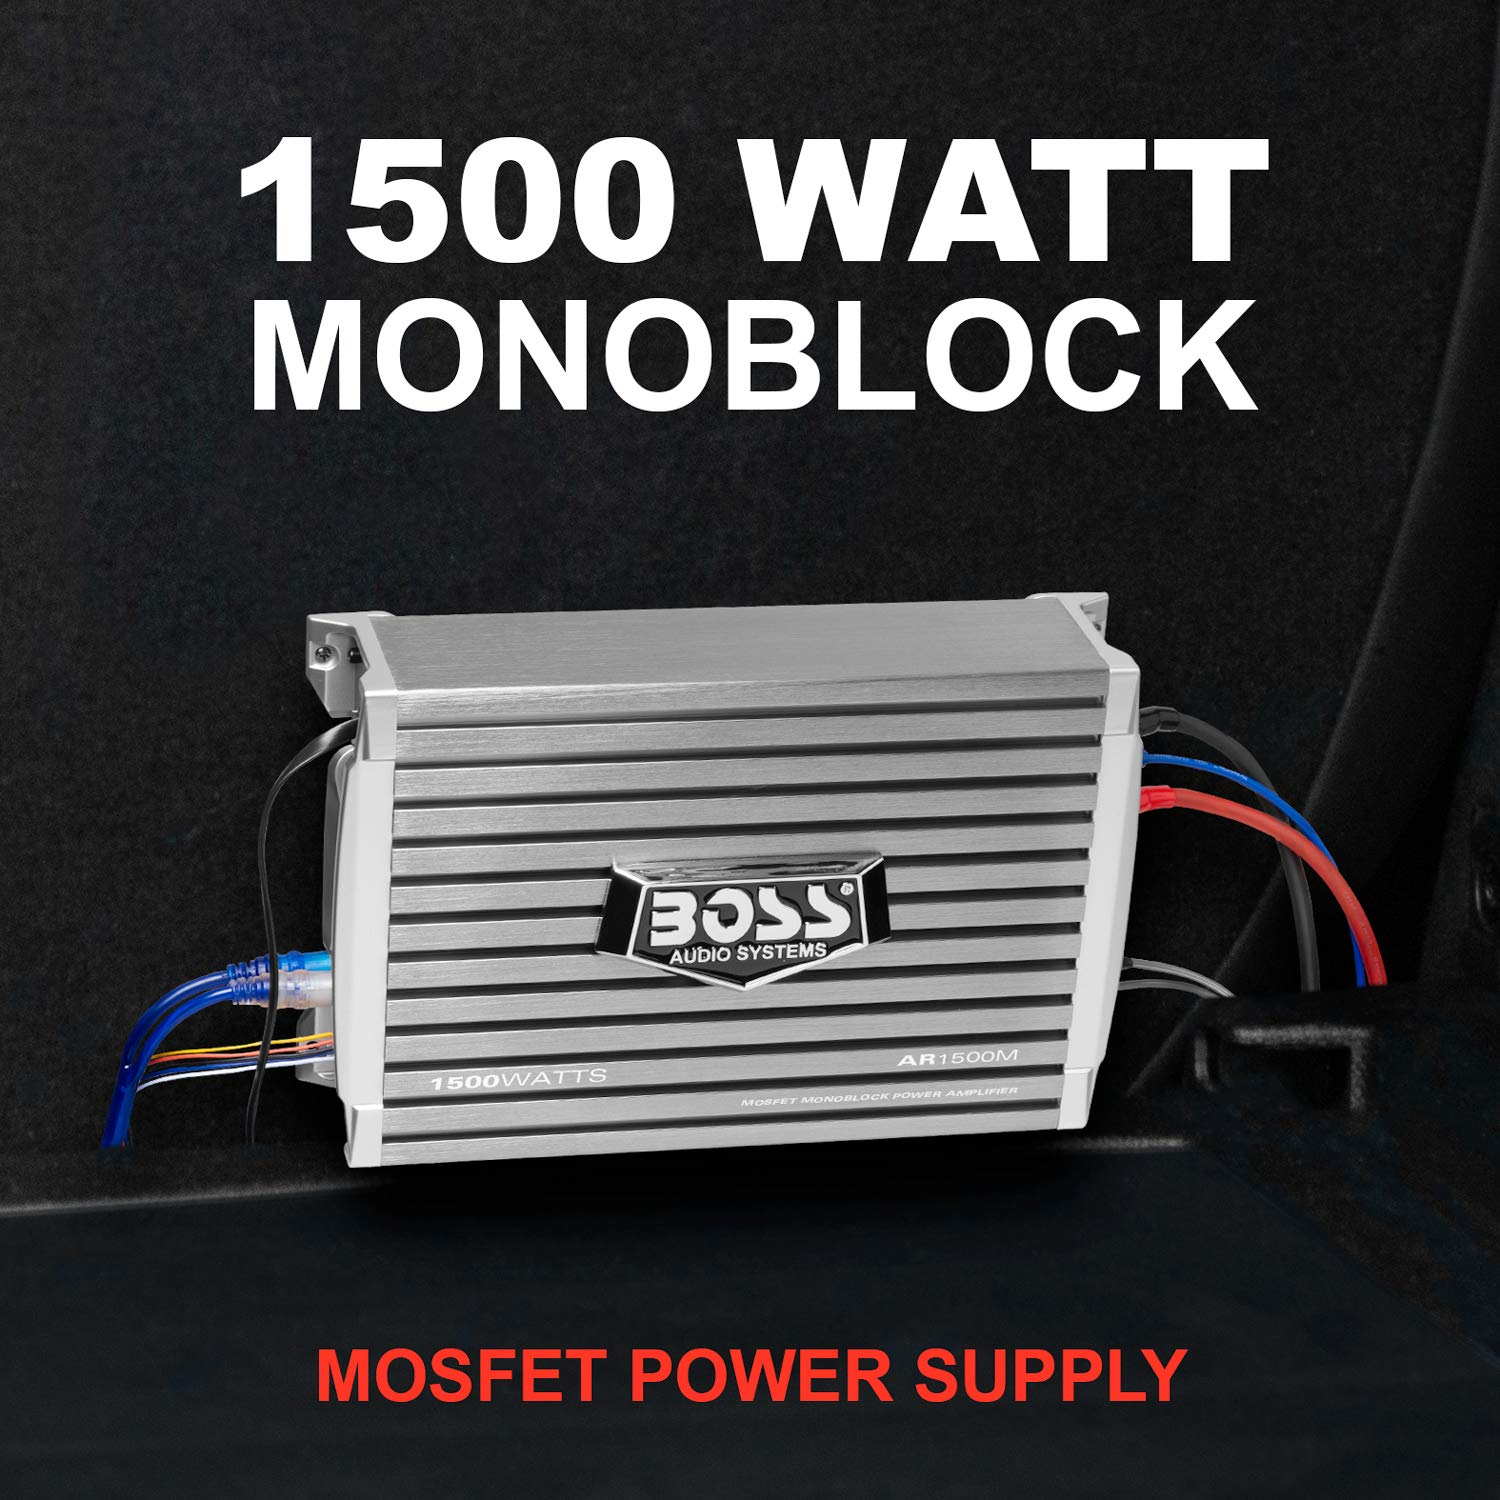 Boss Audio Ar1500m Car Amplifier 1500 Watts Max Power 25 Watt Mosfet 2 4 Ohm Stable Class A B Monoblock Supply Remote Subwoofer Control